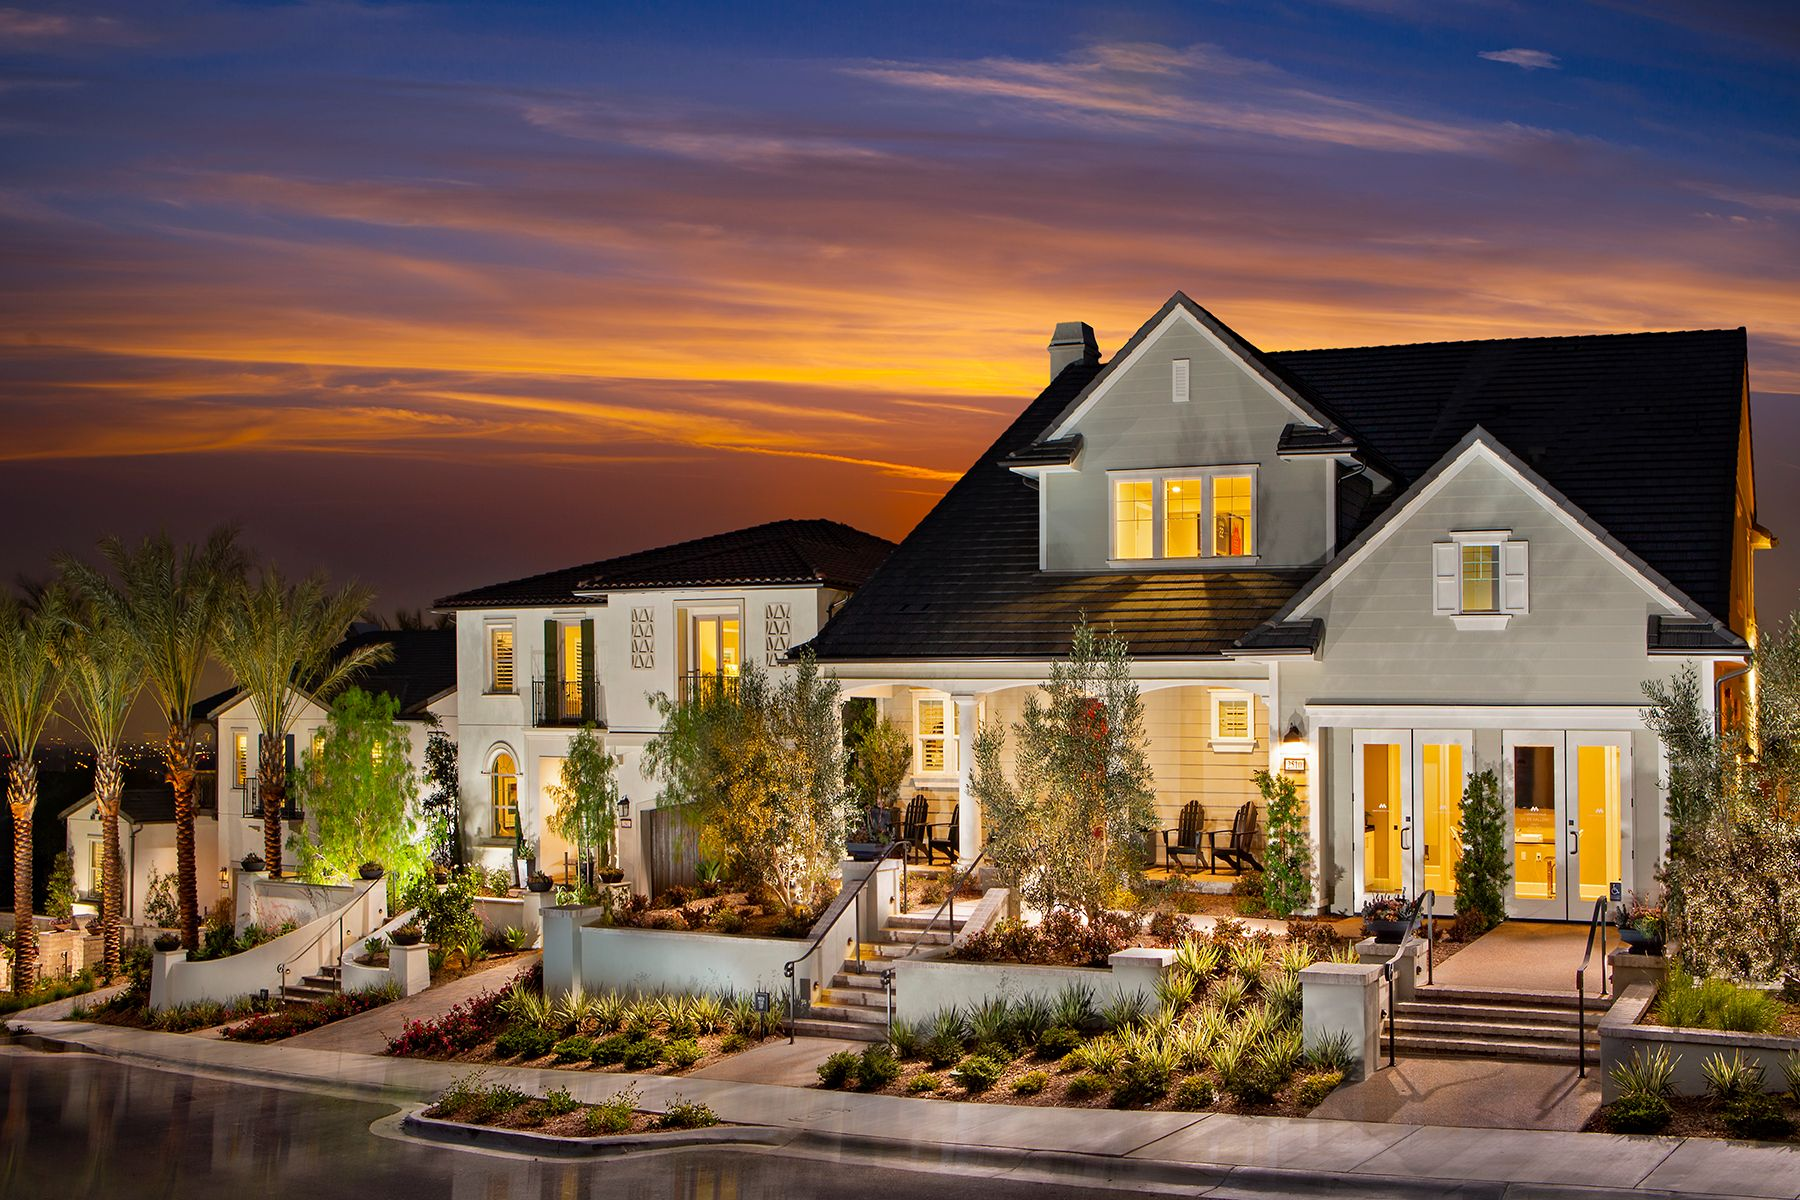 14 The New Home Company Communities in Irvine, CA | NewHomeSource